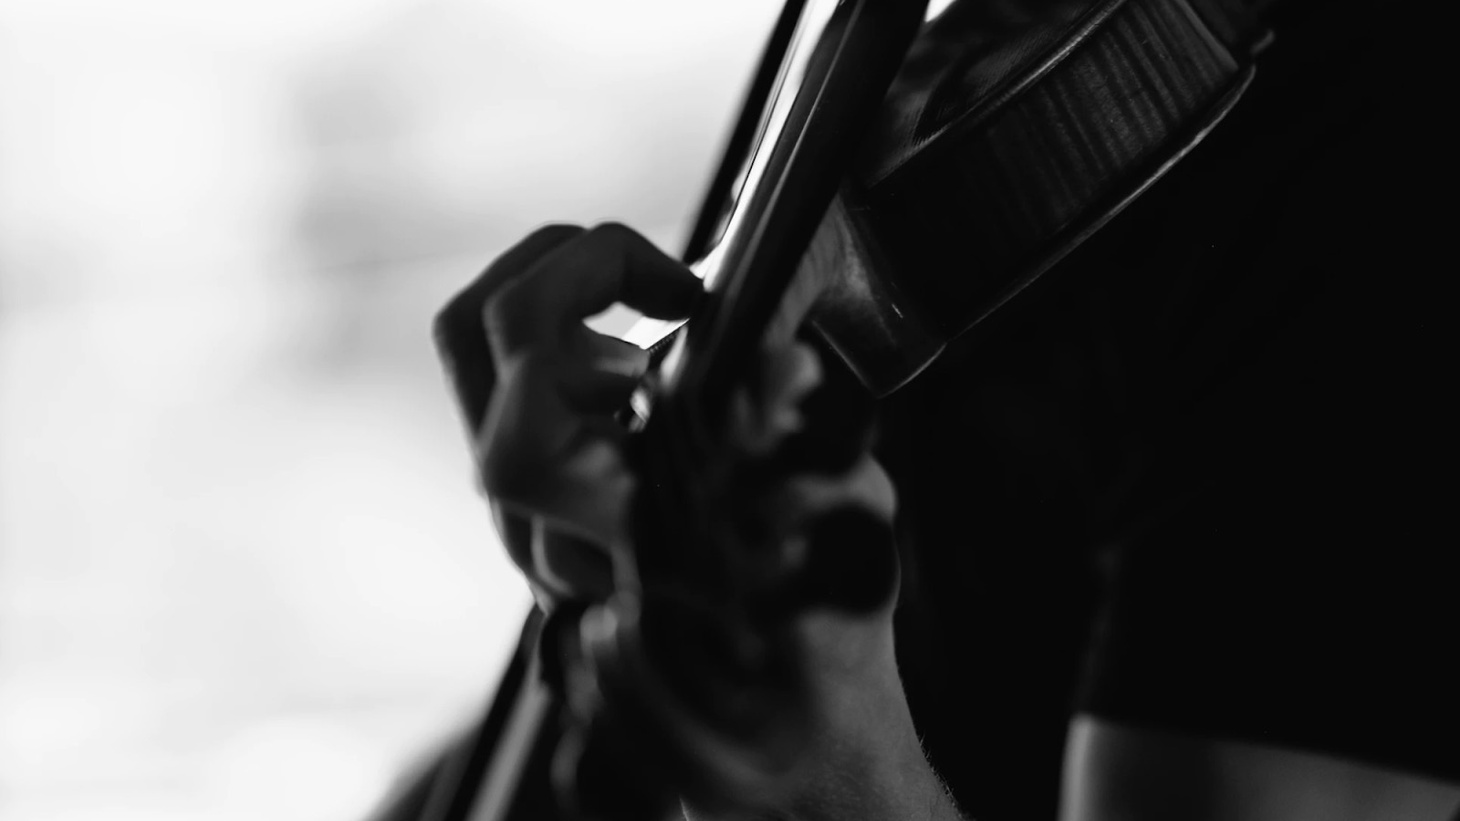 This year's festival will be dedicated to Alonzo James' incredible contribution to old-time fiddle music.